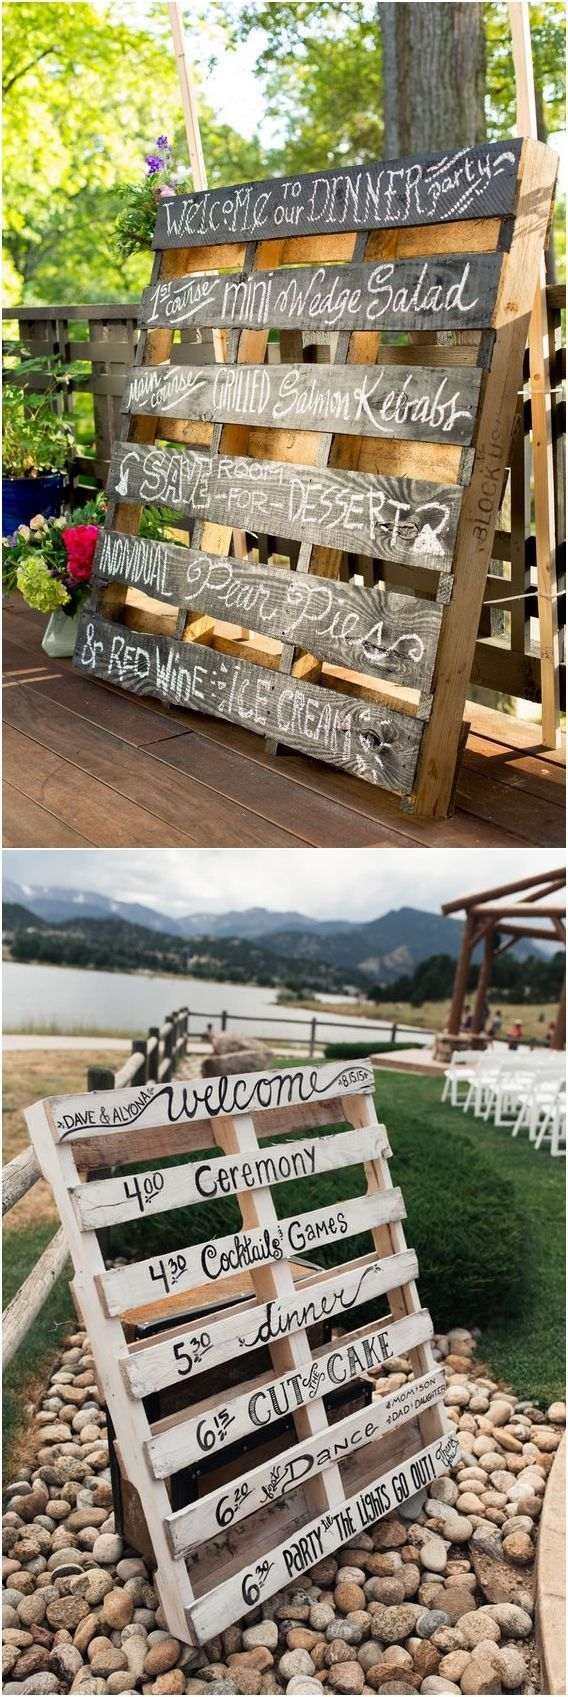 Wedding decorations country  Say ucI Doud to These Fab  Rustic Wood Pallet Wedding Ideas